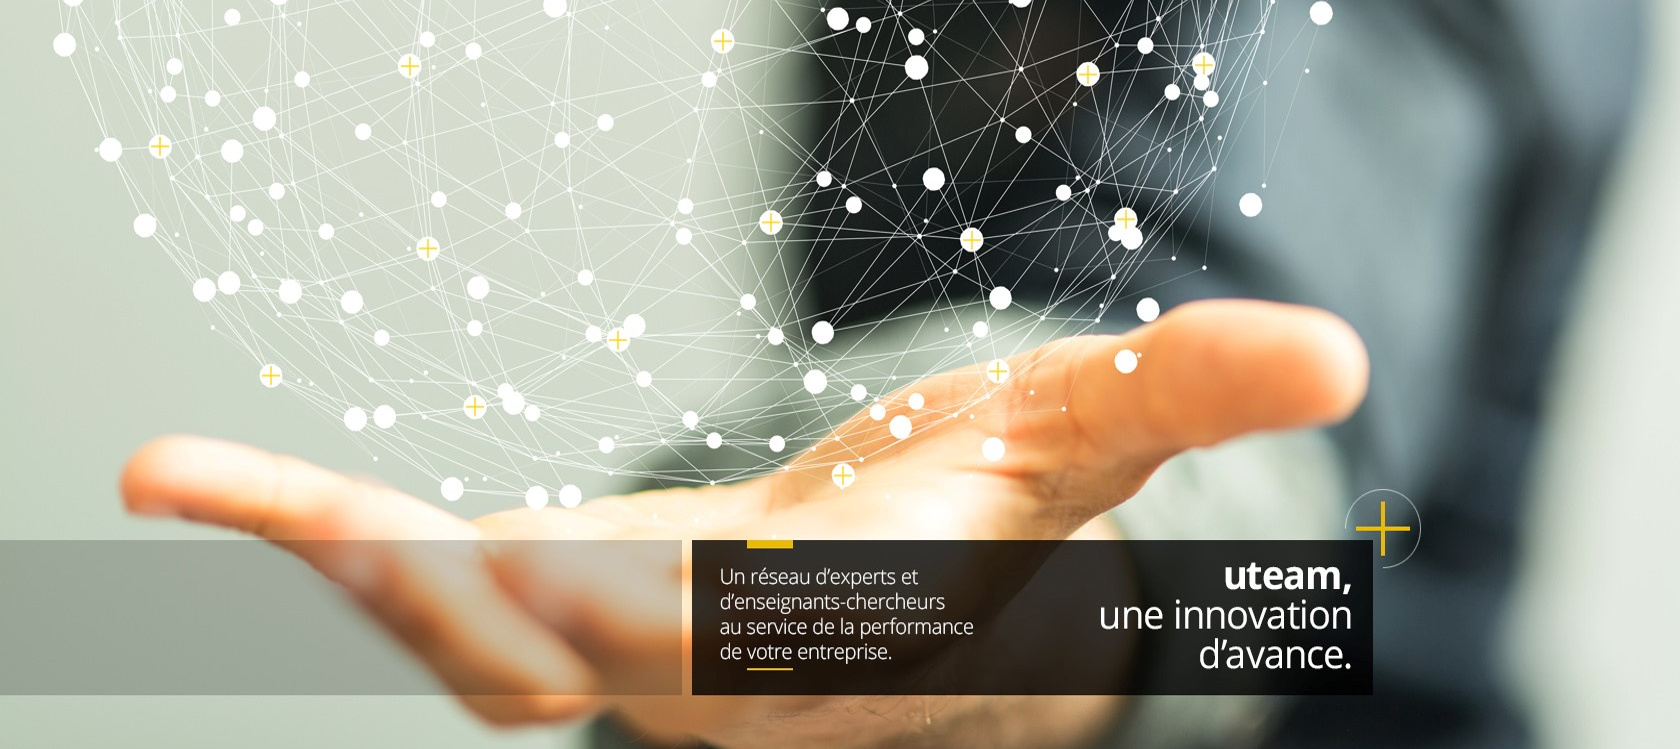 UTeam, une innovation d'avance